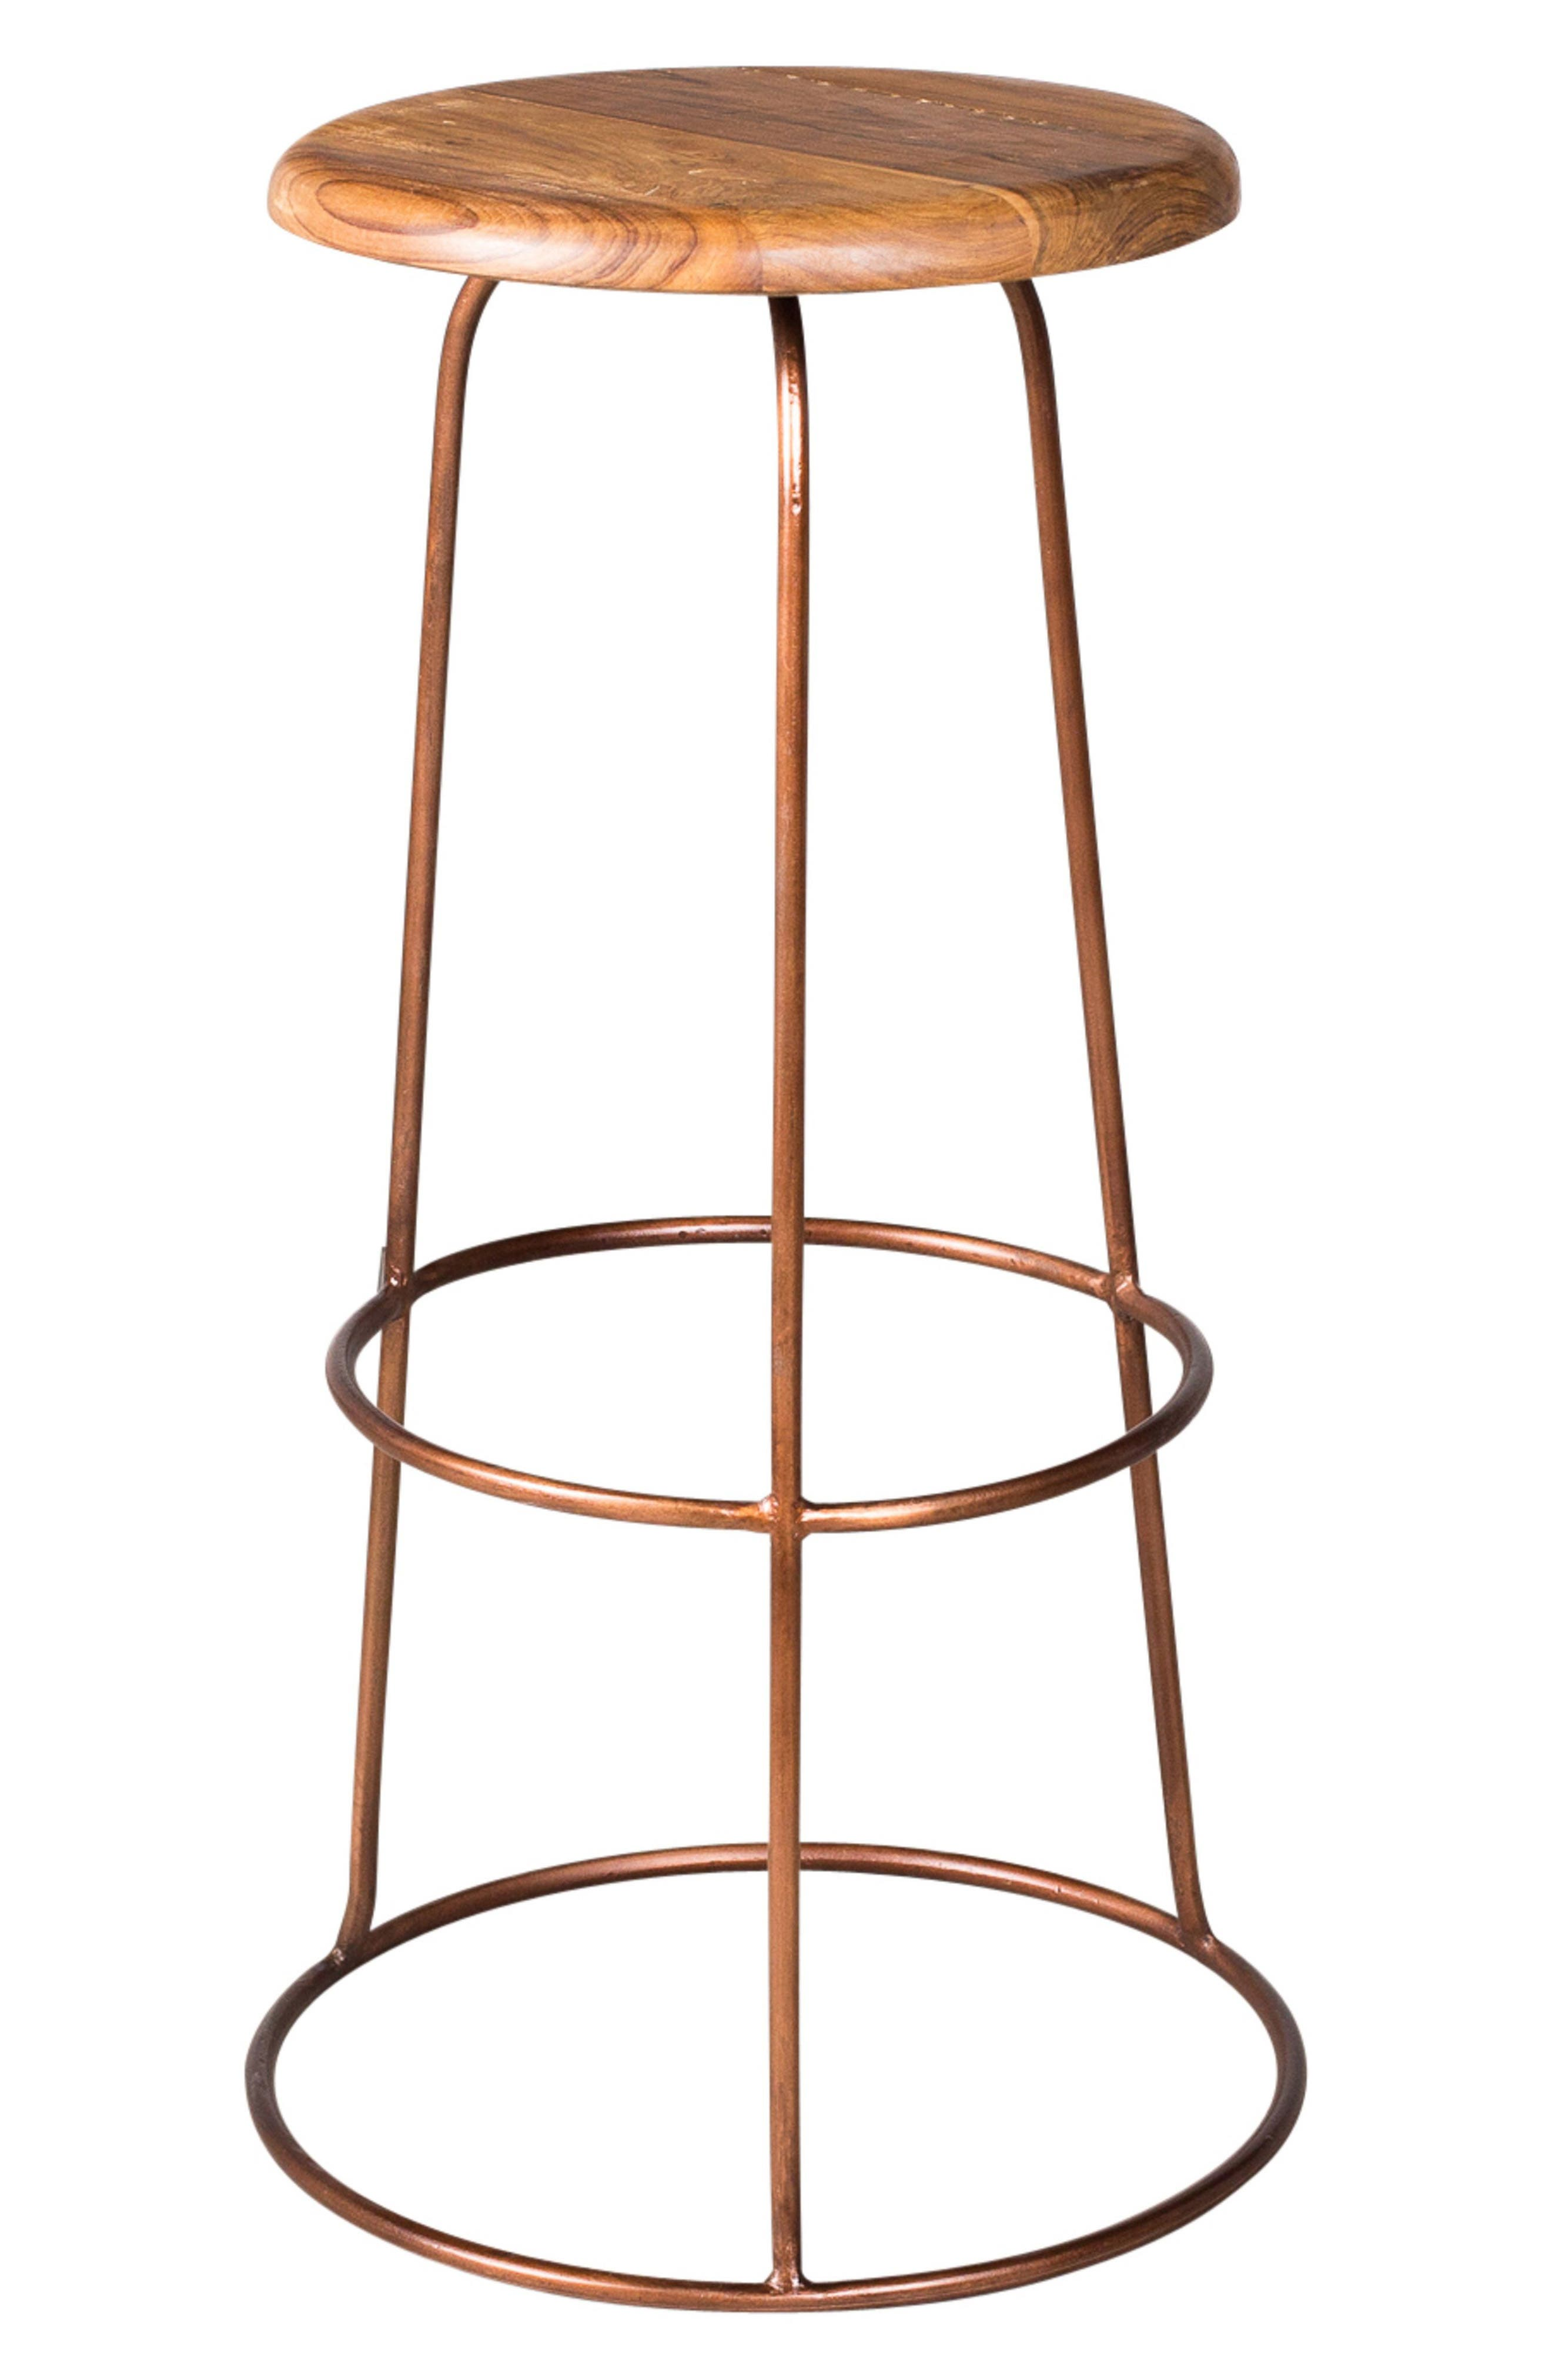 Wilco Bar Stool,                             Main thumbnail 1, color,                             COPPER